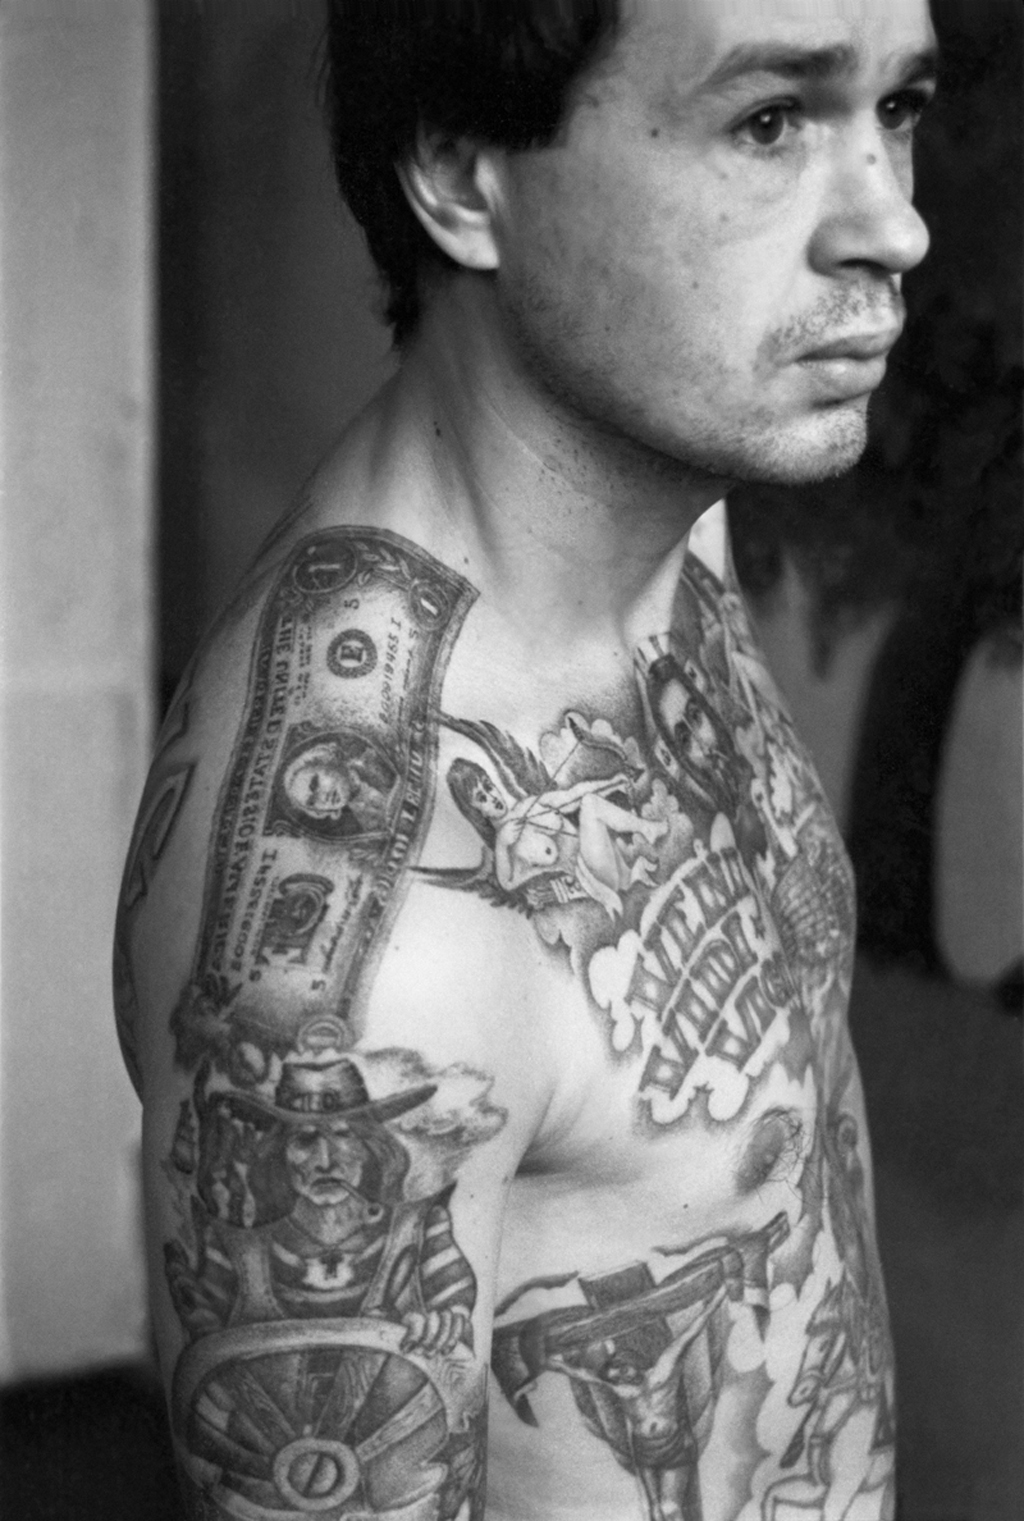 This convict's tattoos were applied in the camps of the Urals where the tattoo artists produce work of exceptional quality. Because they were so highly regarded, criminals often attempted to be transferred there in order to be tattooed.